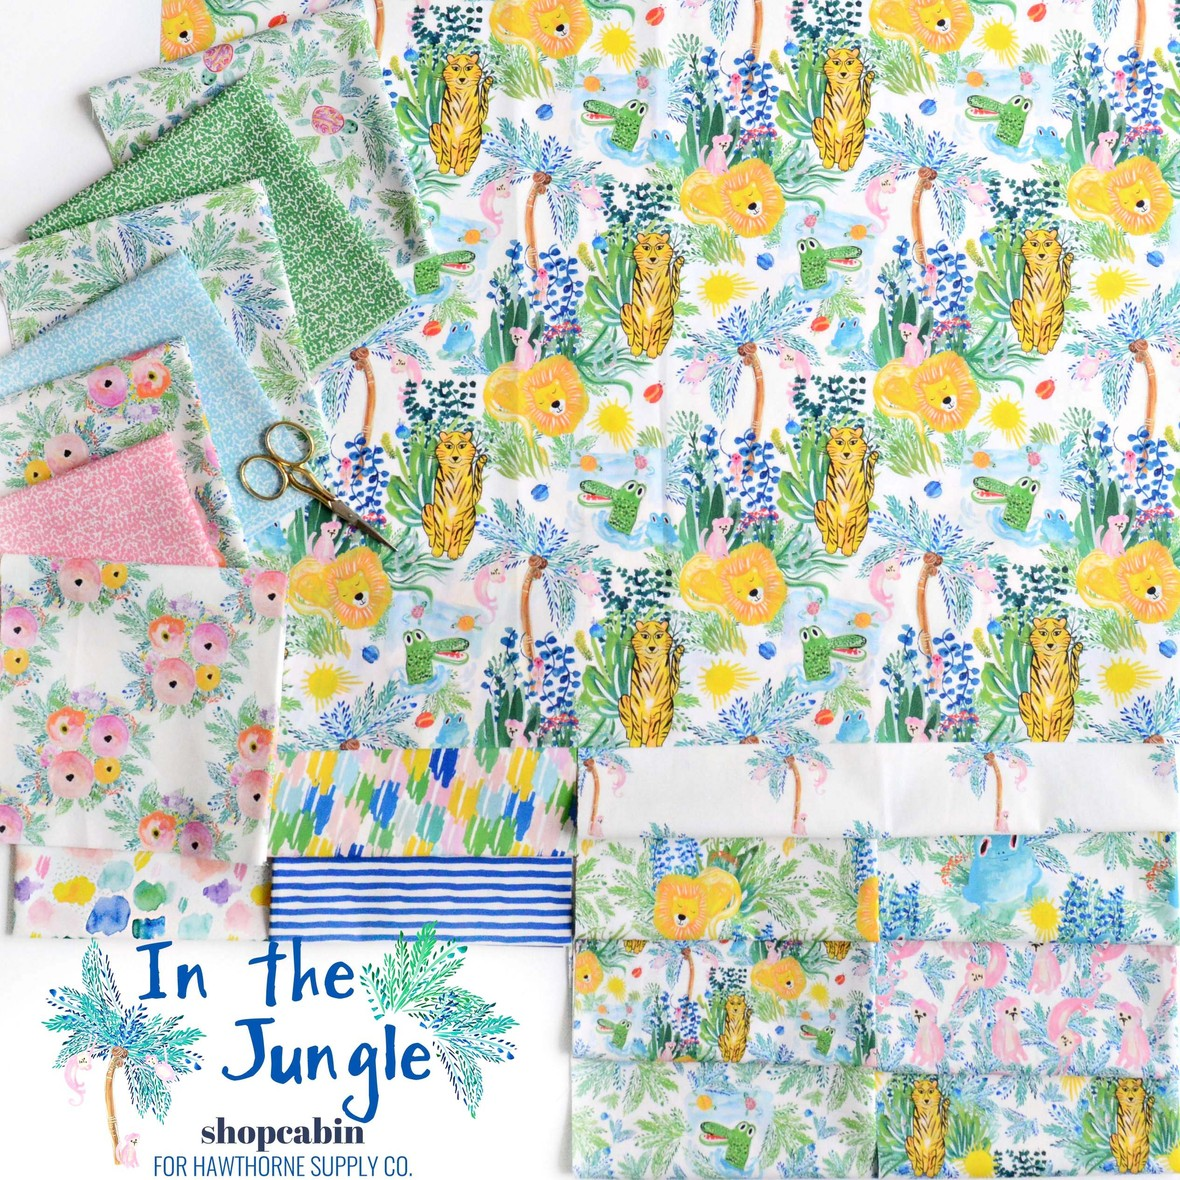 In the Jungle Fabric Poster Shopcabin for Hawthorne Supply Co